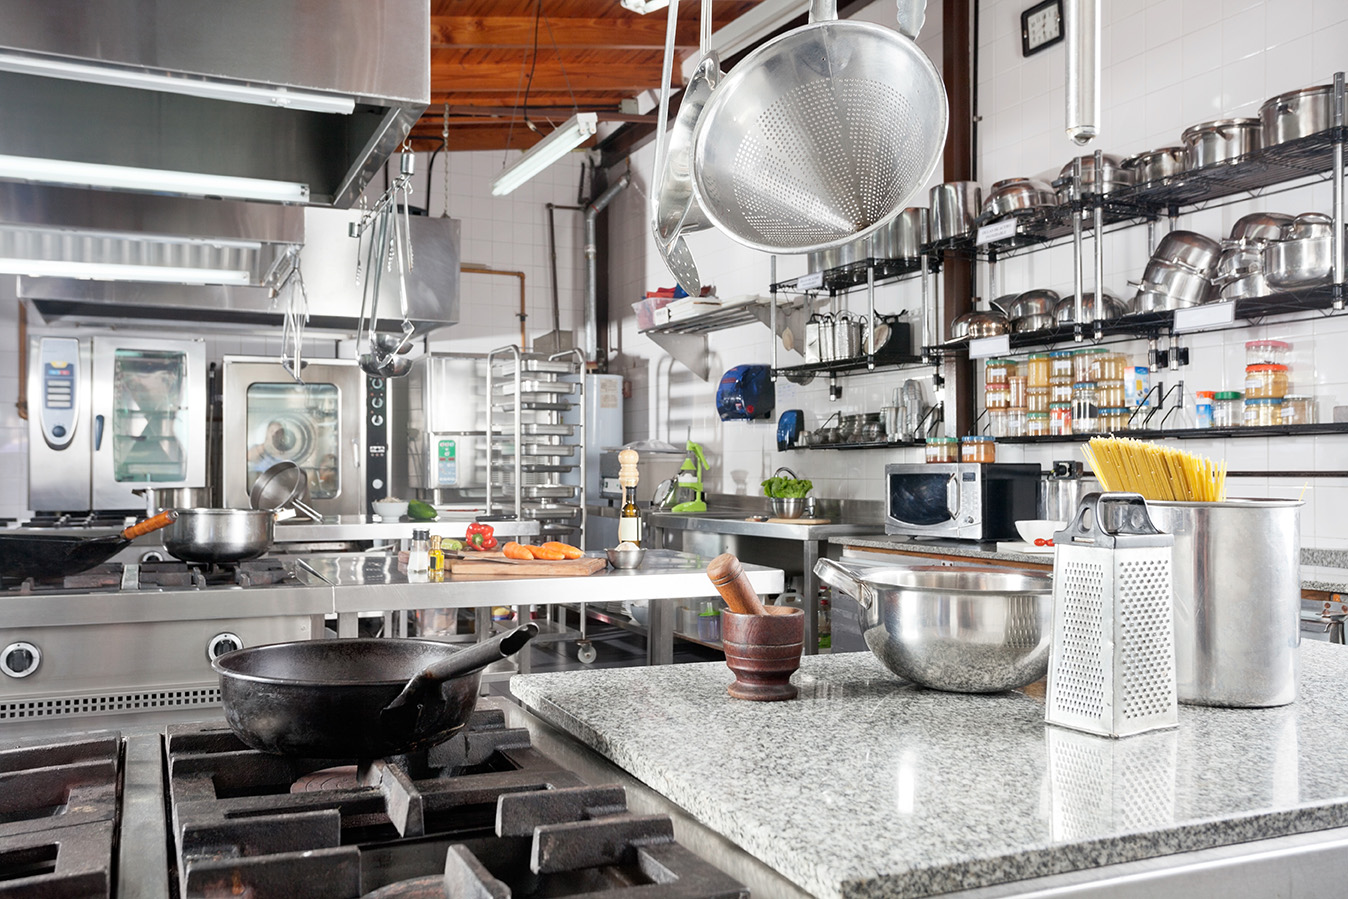 Restaurant Kitchen Design and Food Safety  My Food Safety